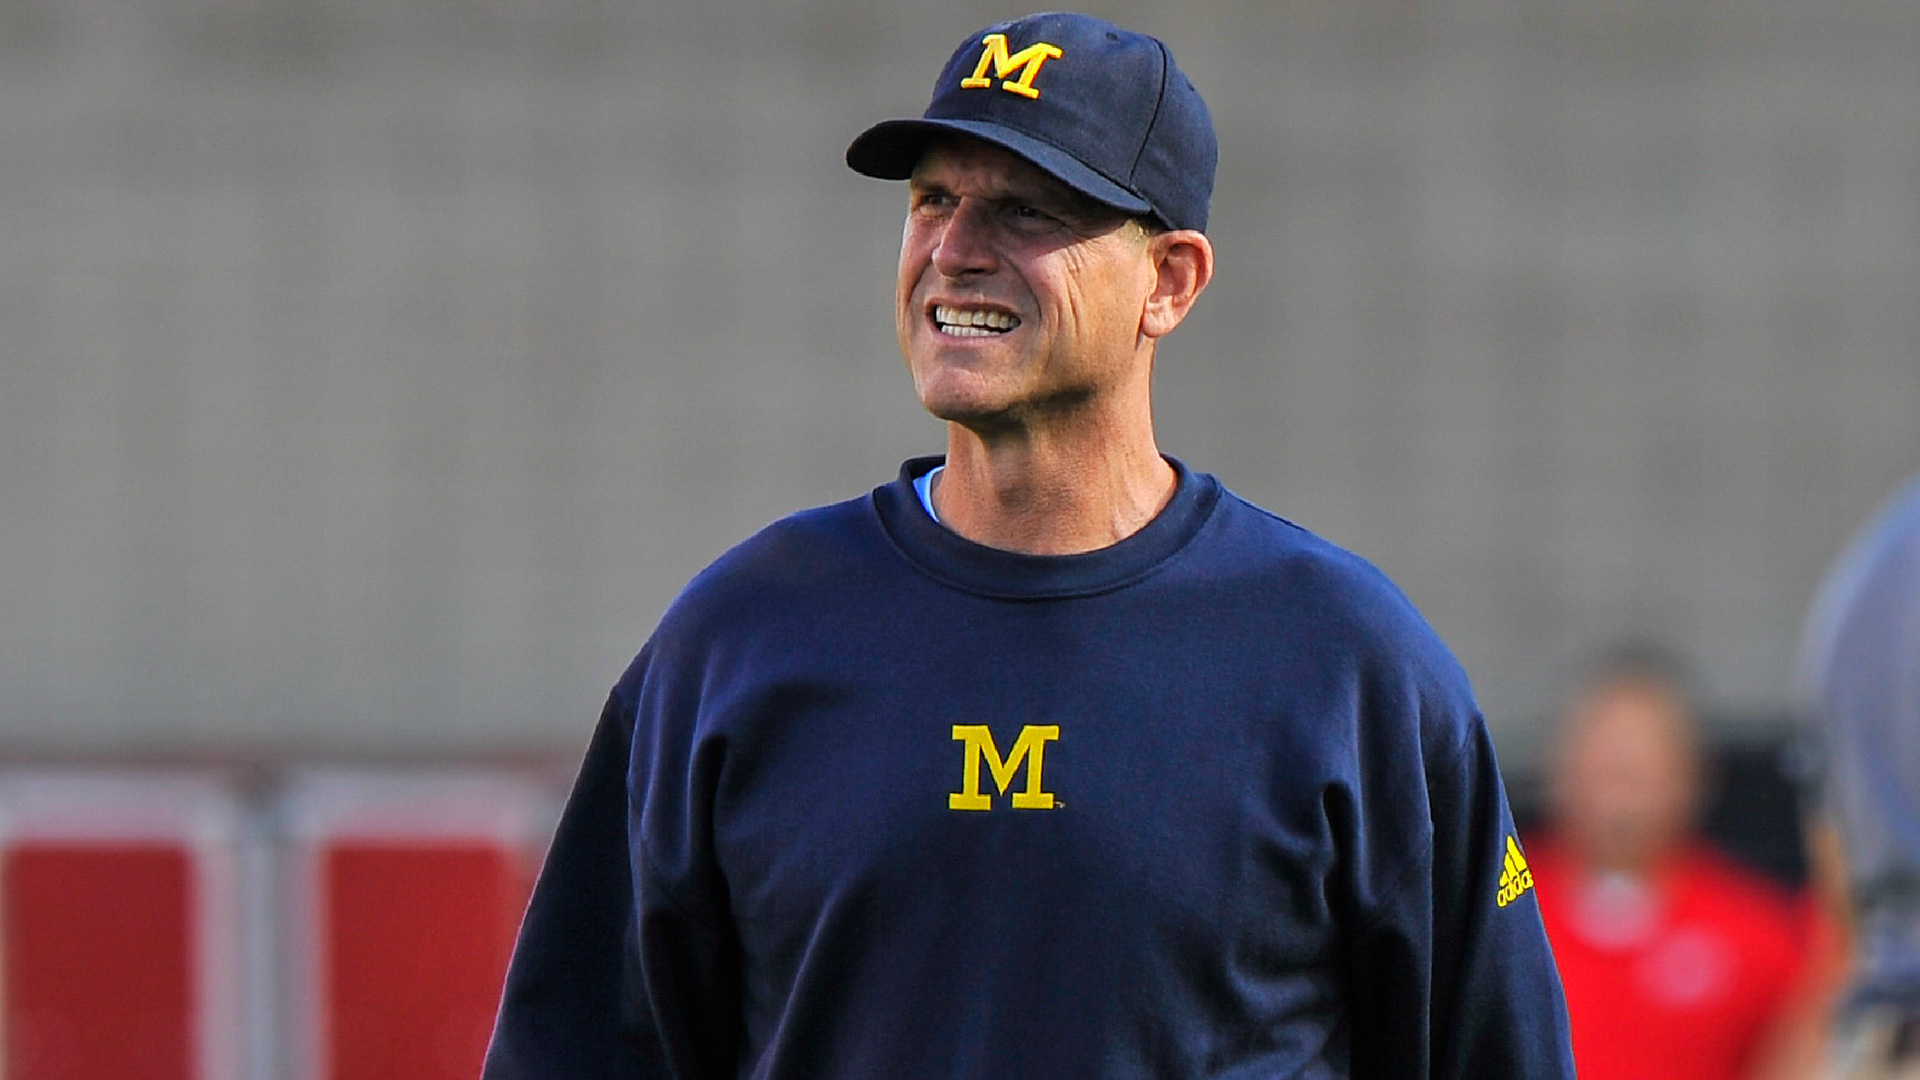 3-jim-harbaugh-090515-getty-ftrjpg_1fd1ztat2e3db16iqbxv0qzklo